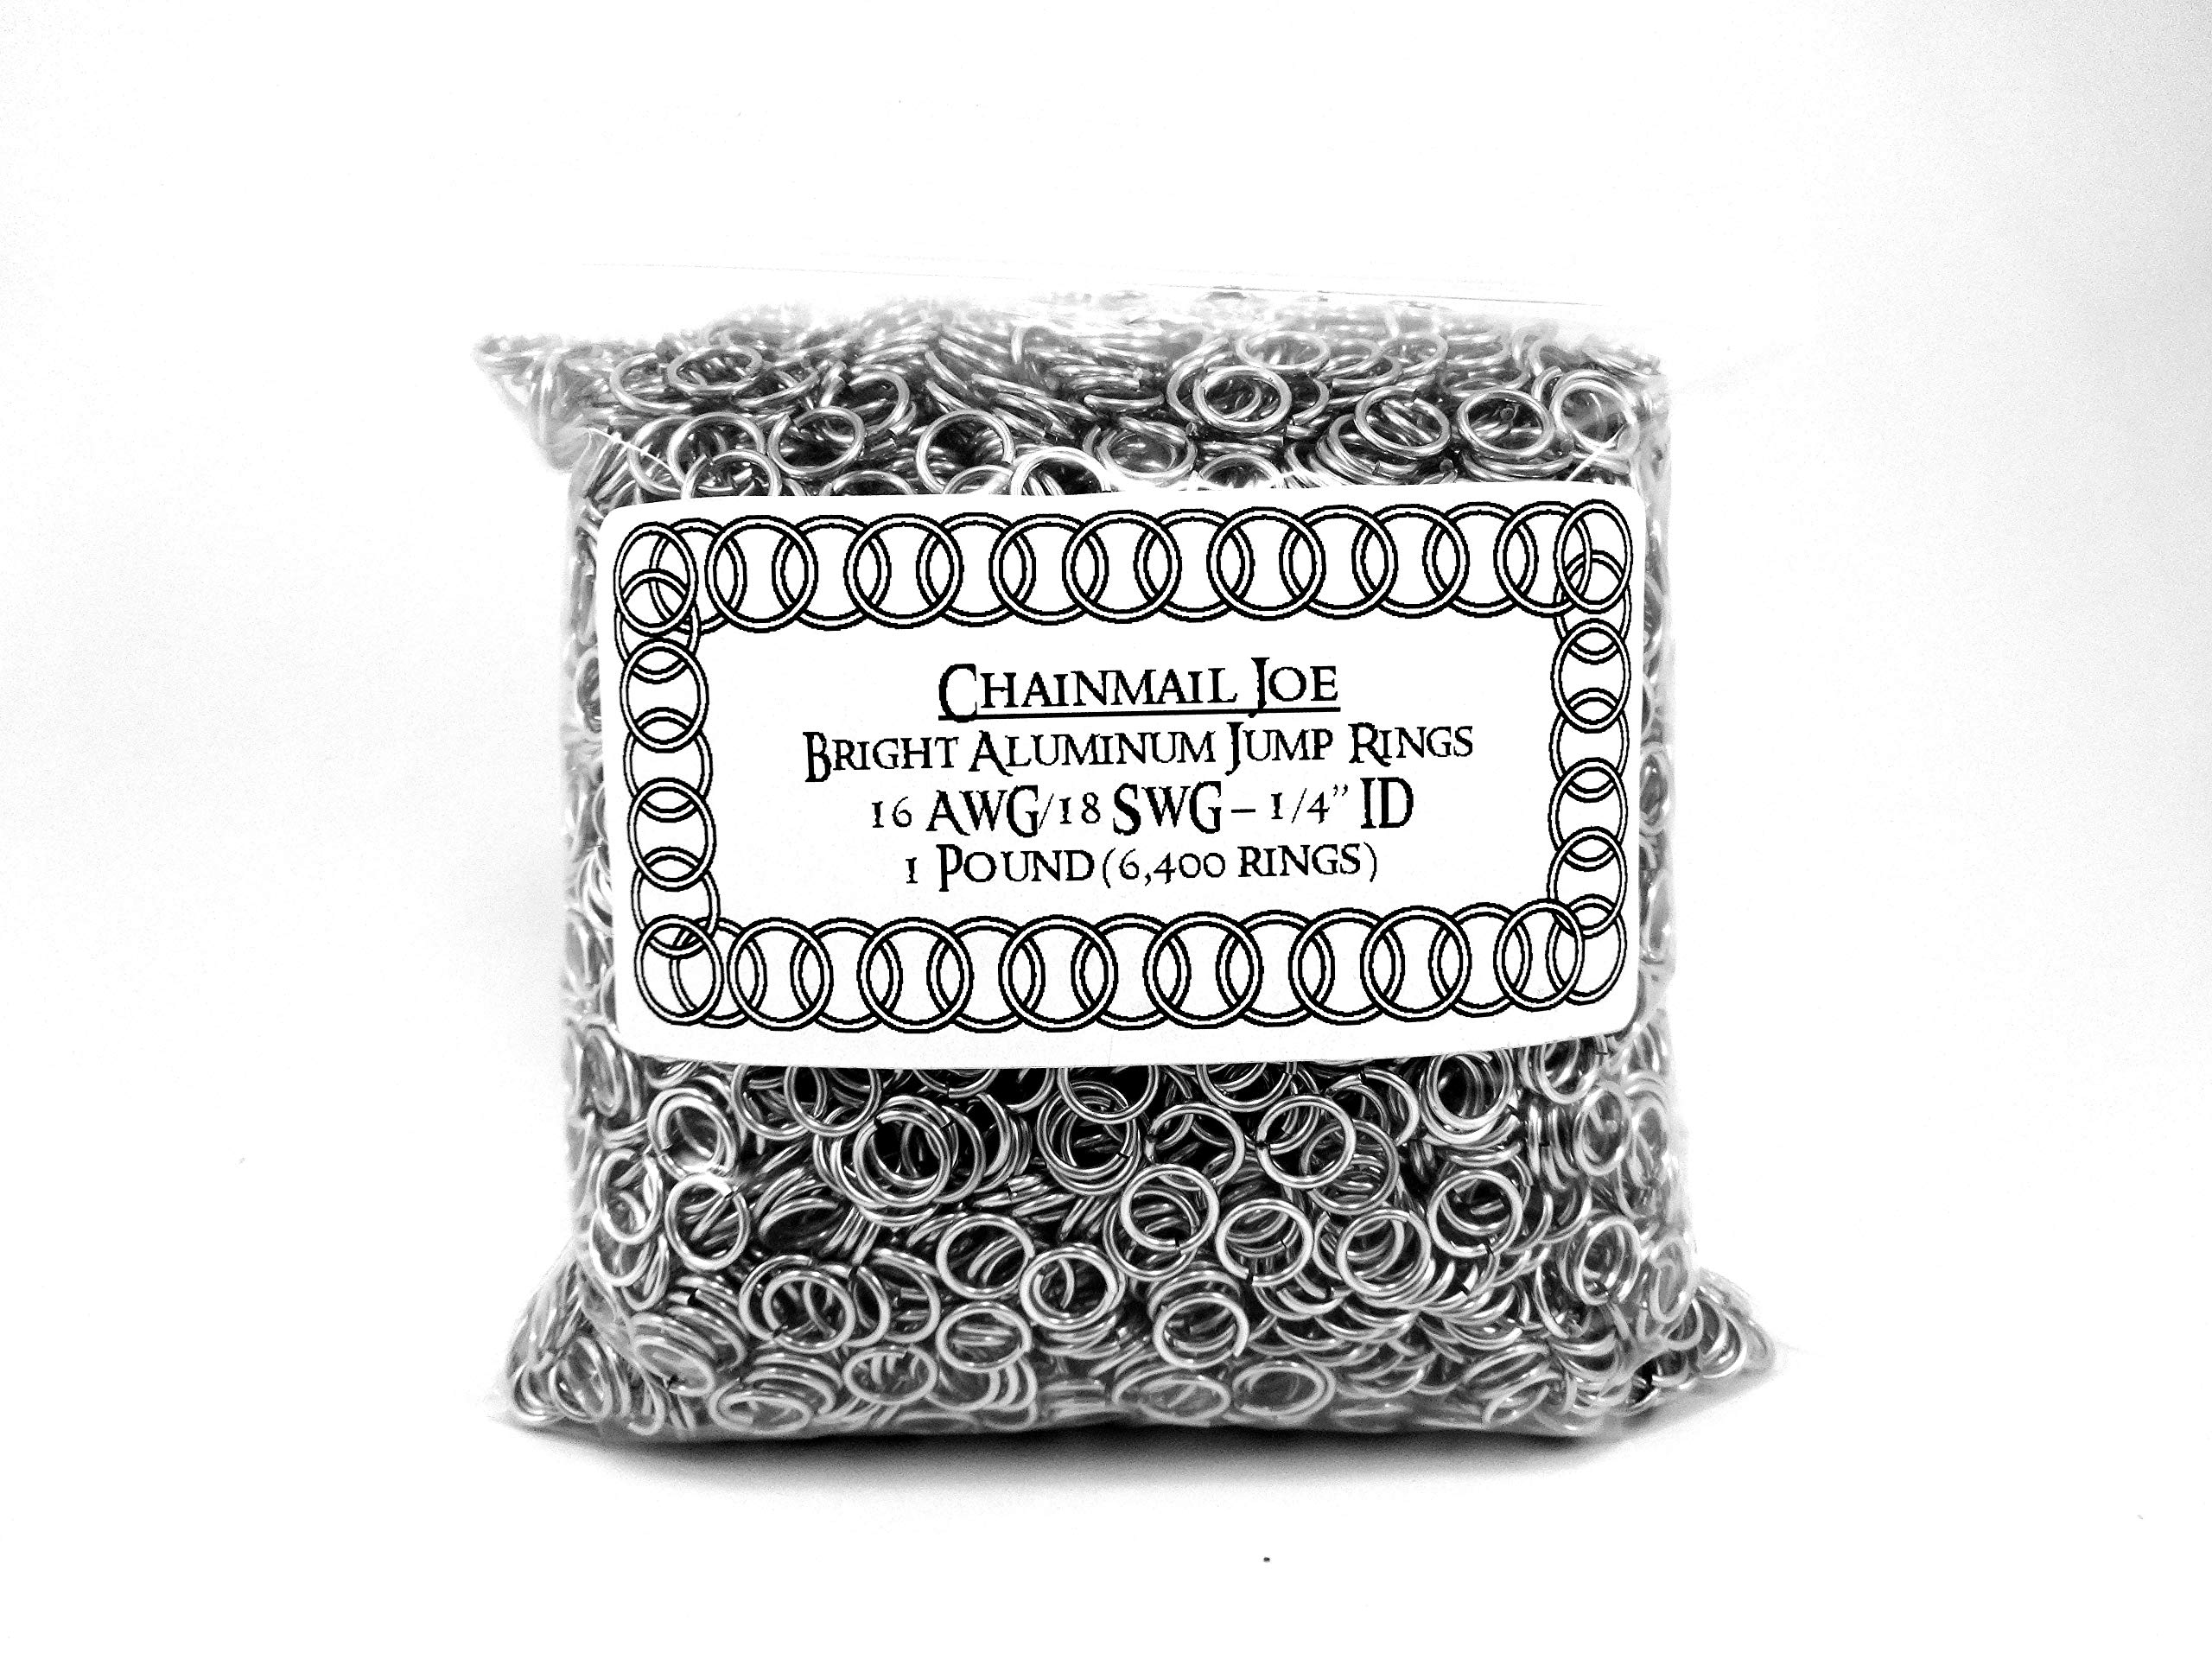 1 Pound Bright Aluminum Chainmail Jump Rings 18G 1/4'' ID (6400+ Rings!) by Chainmail Joe